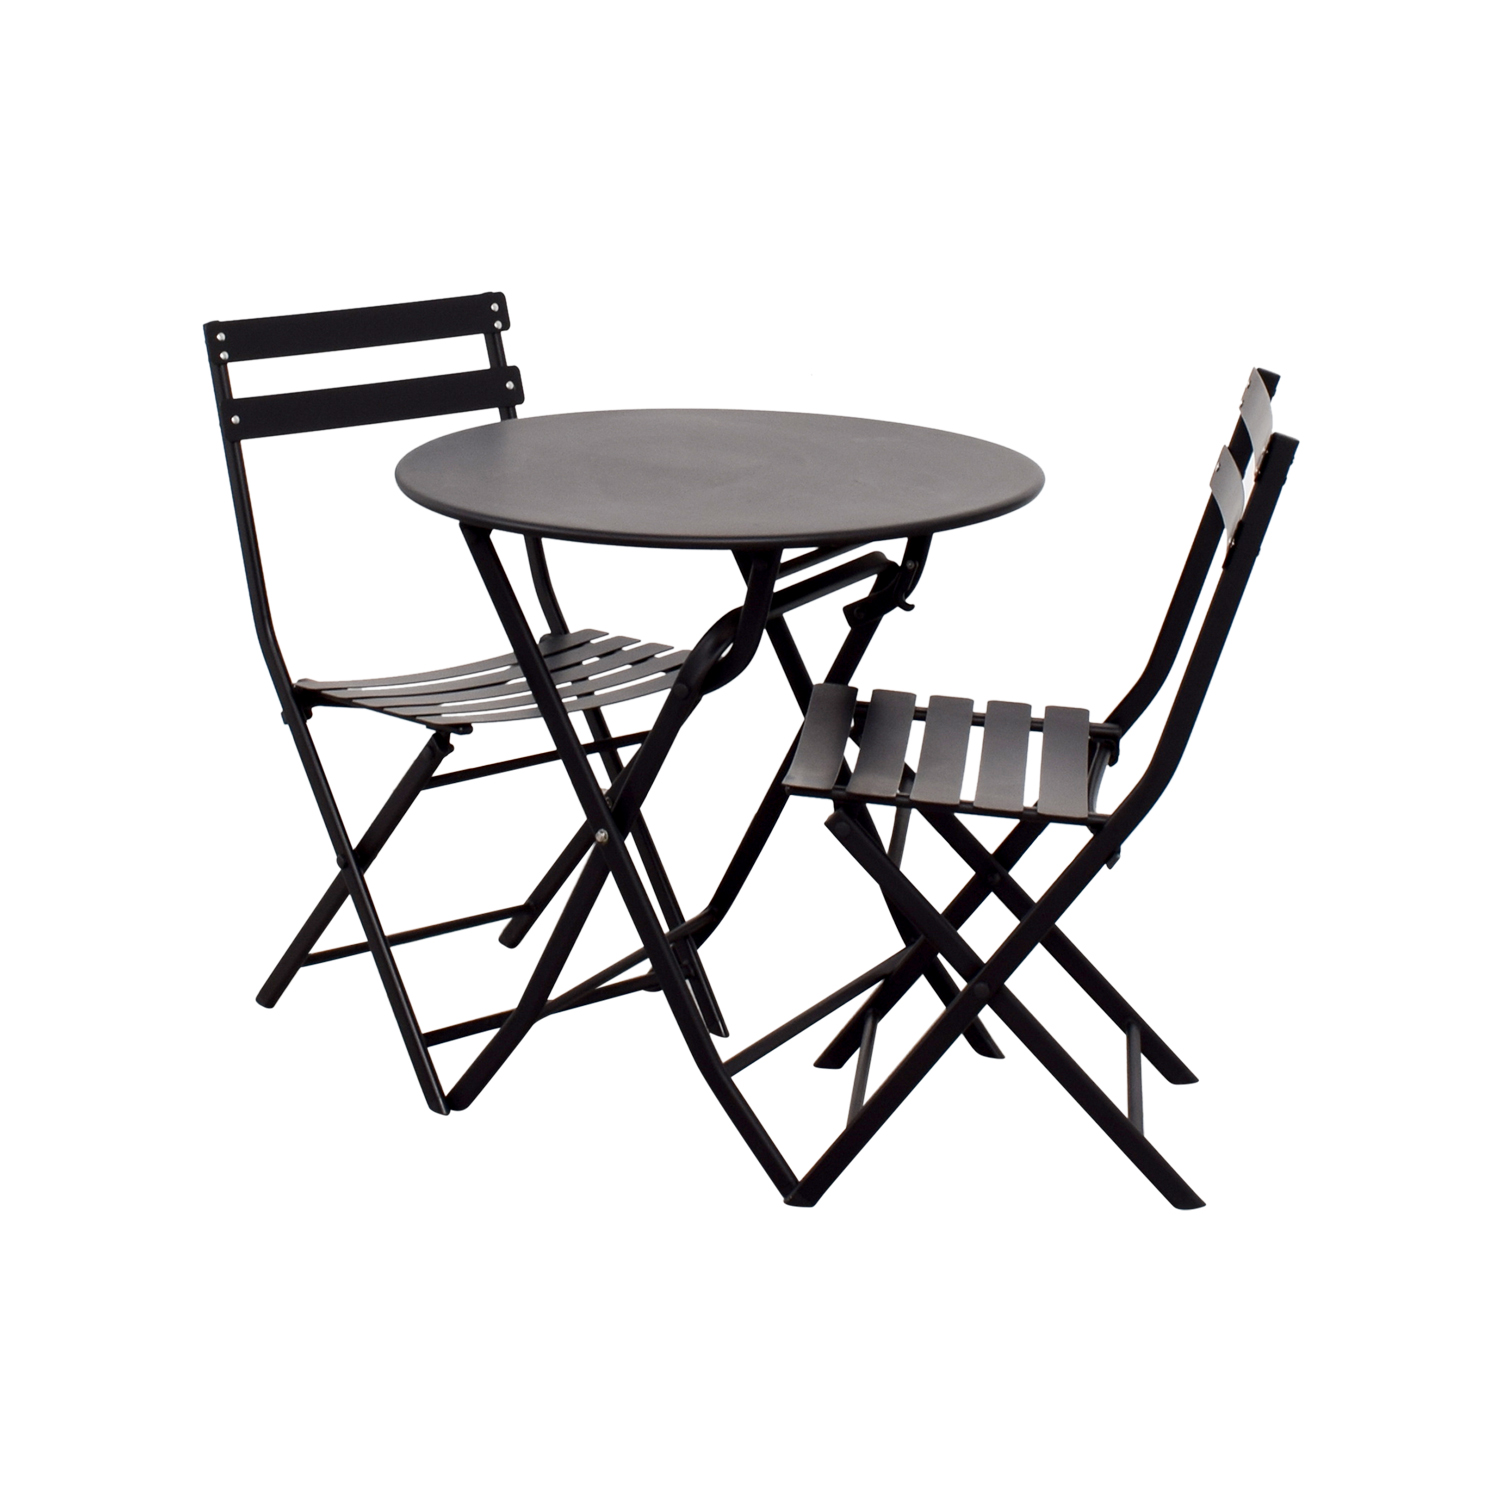 Patio Furniture Table And Chairs 62 Off Patio Table And Chairs Tables